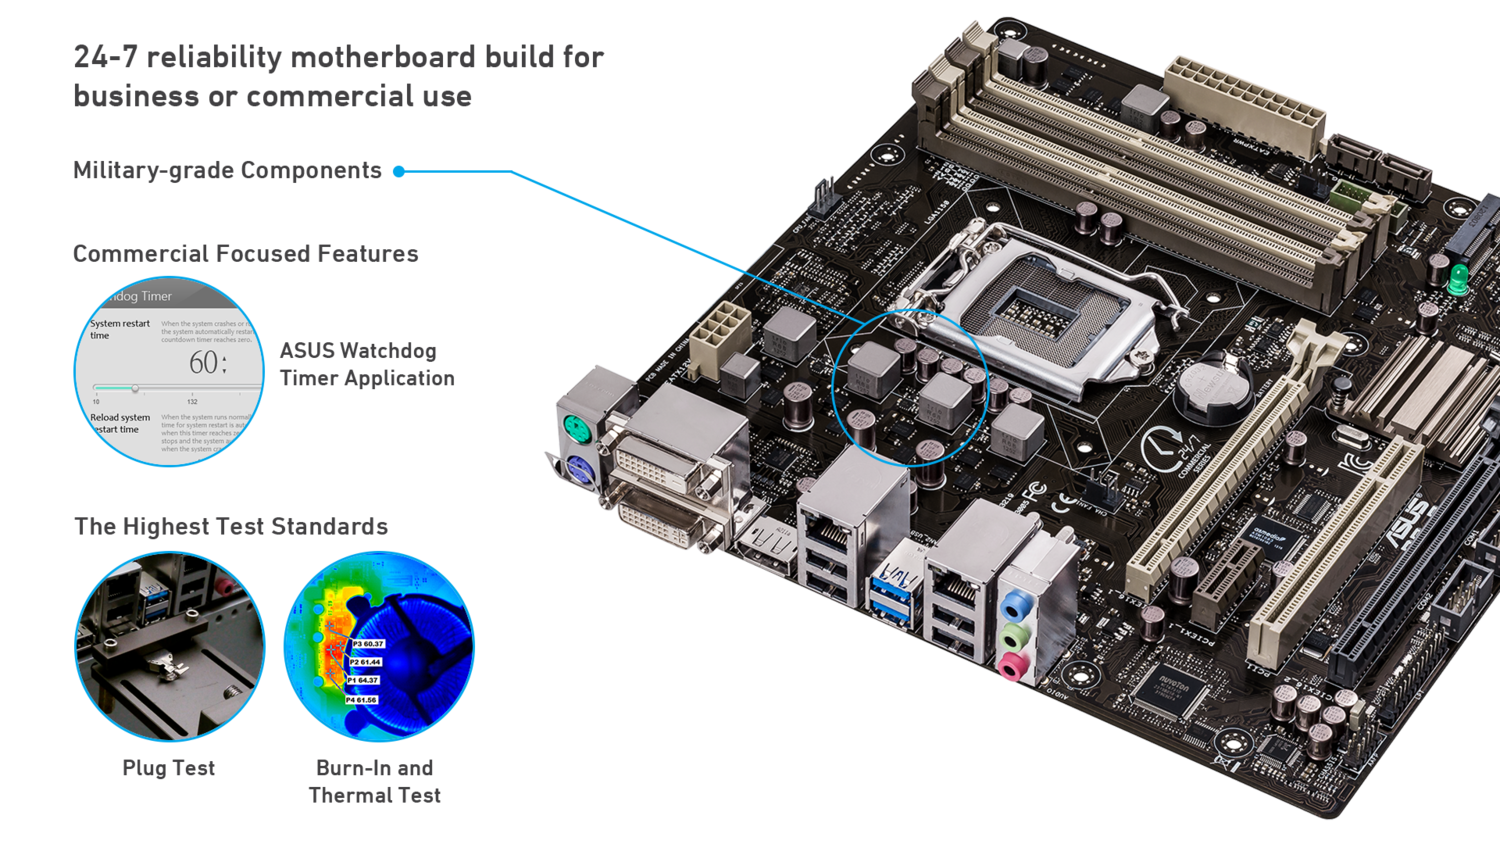 Asus Commercial Series Motherboard Wei Hung Hsieh Watchdog Timers For Multitasking Mb Features